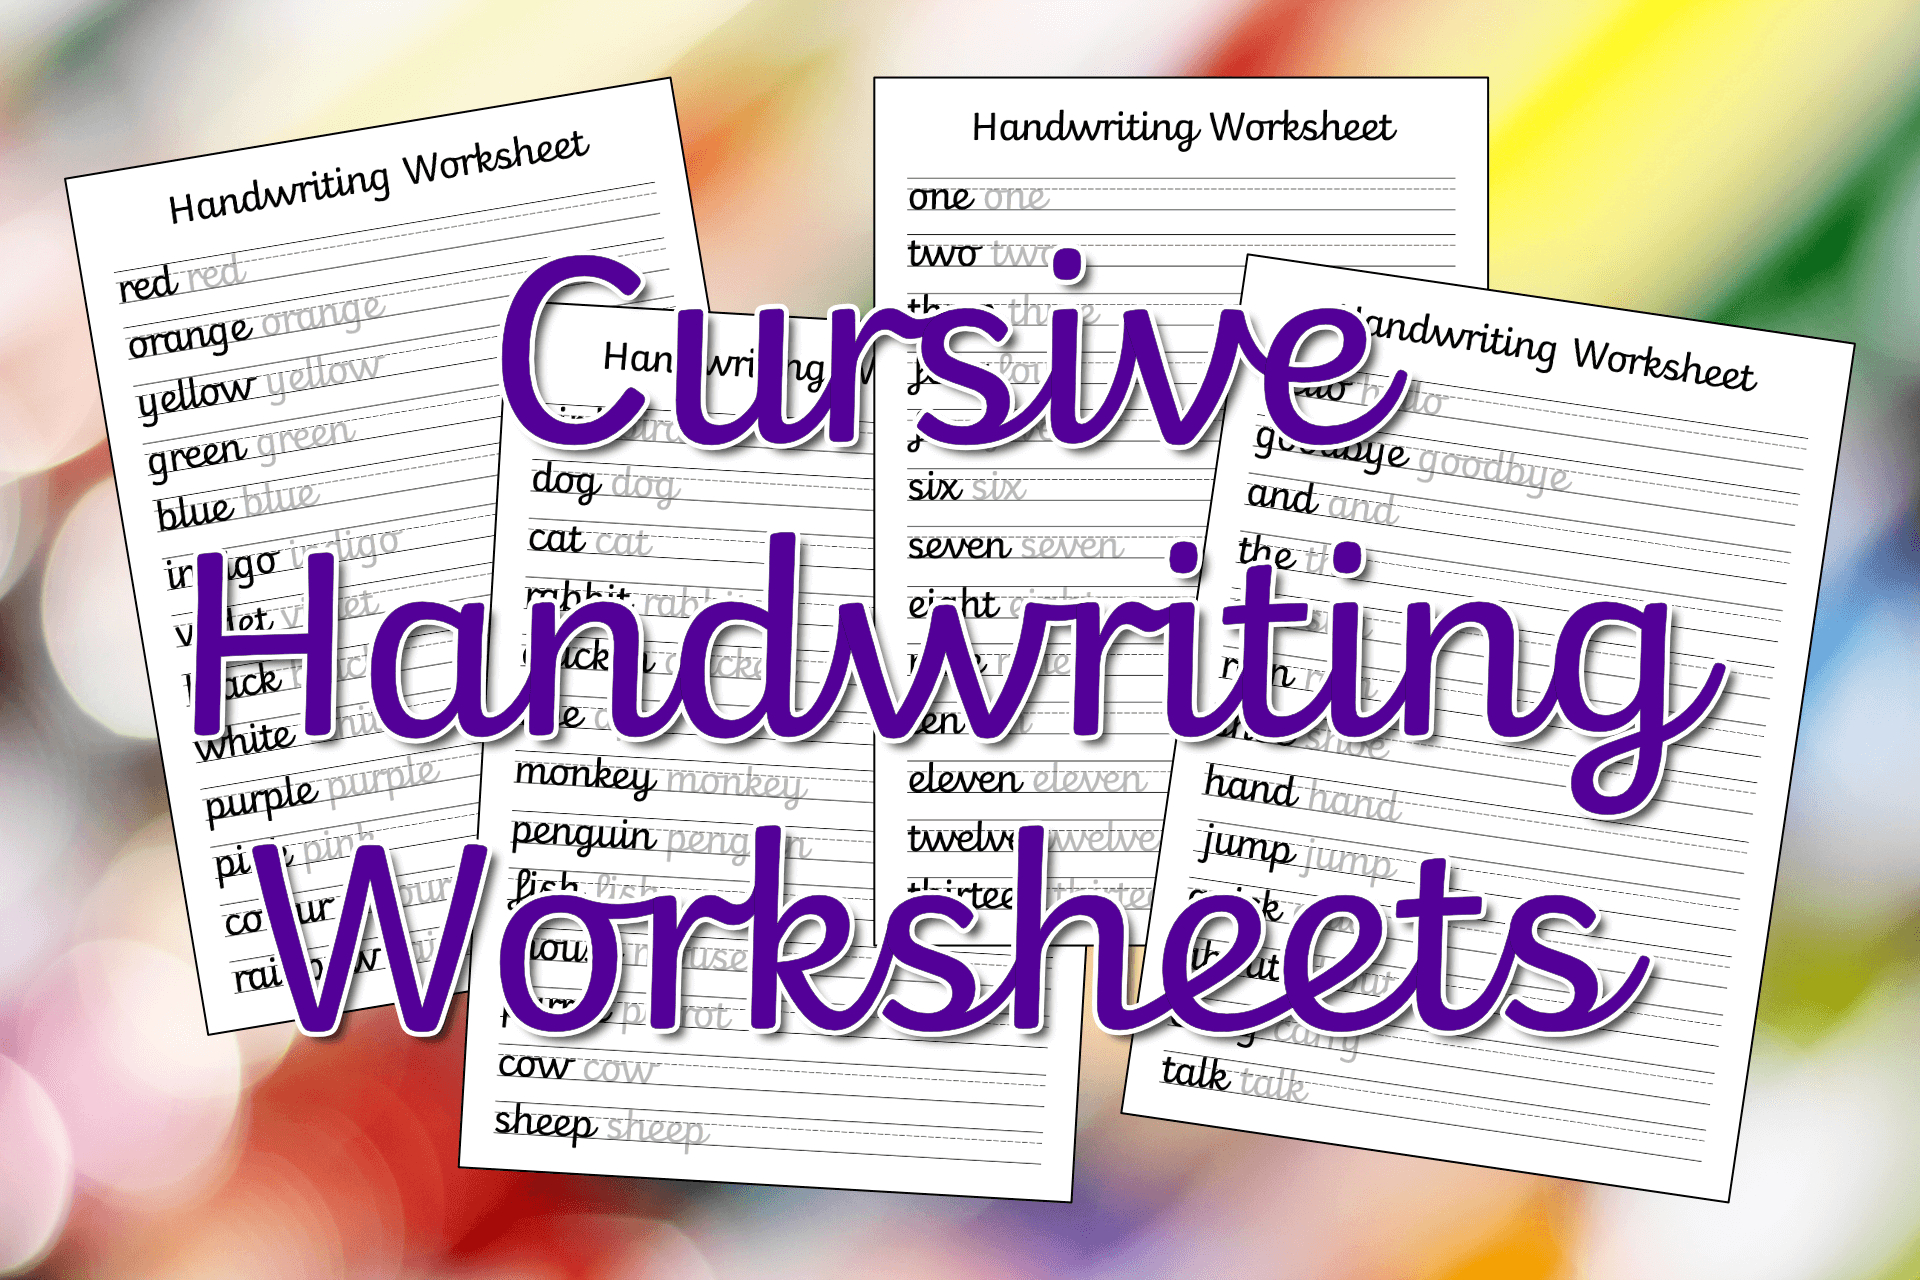 Free Handwriting Worksheets For Preschool With